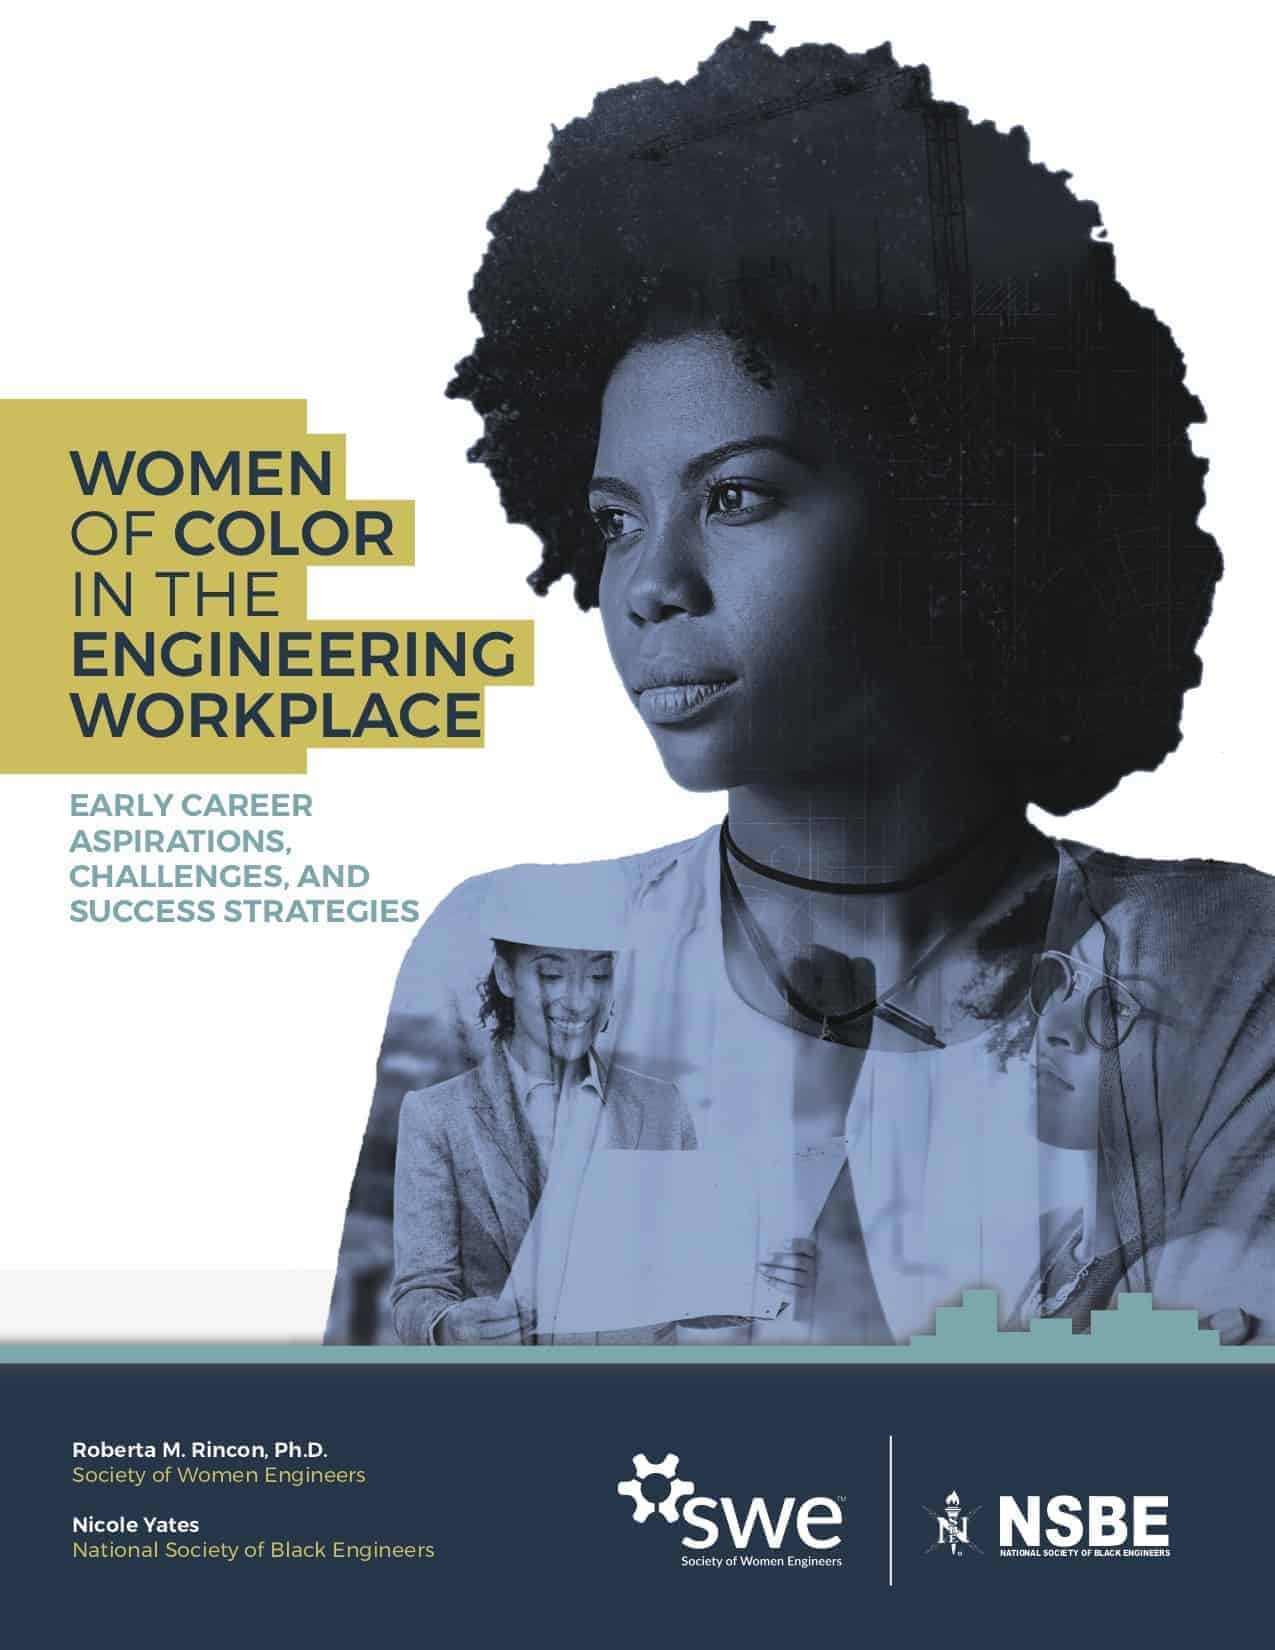 Study: Black Women Engineers Lack Role Models and They Experience Bias